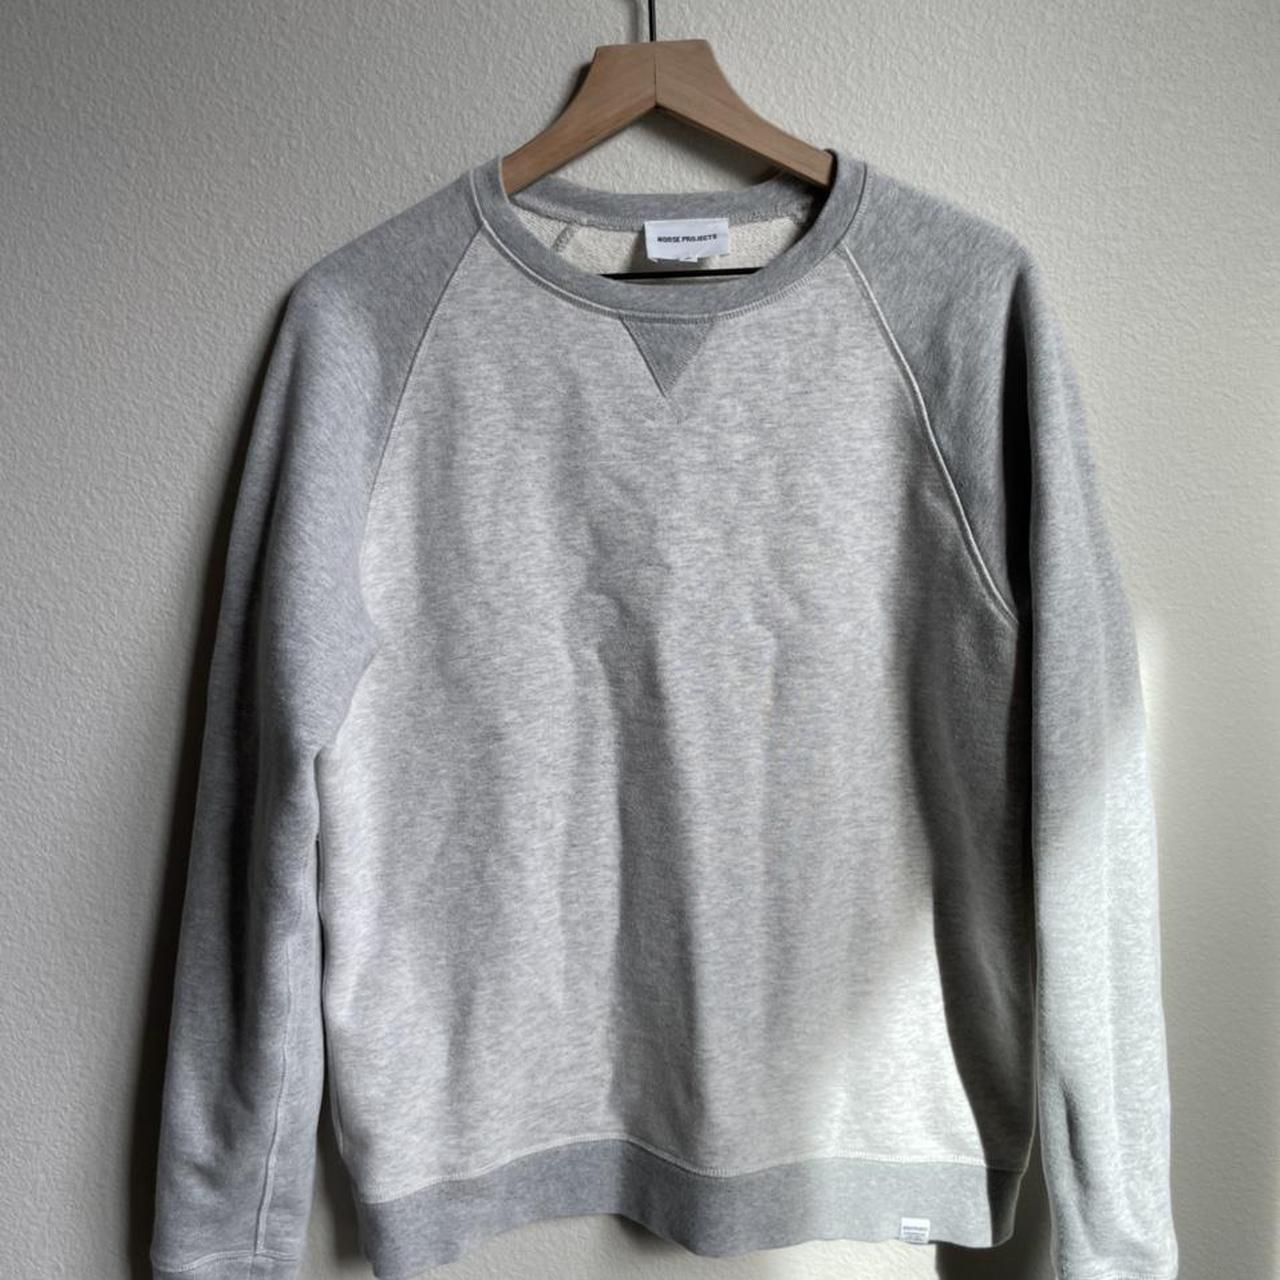 Product Image 1 - Norse projects men's sweater